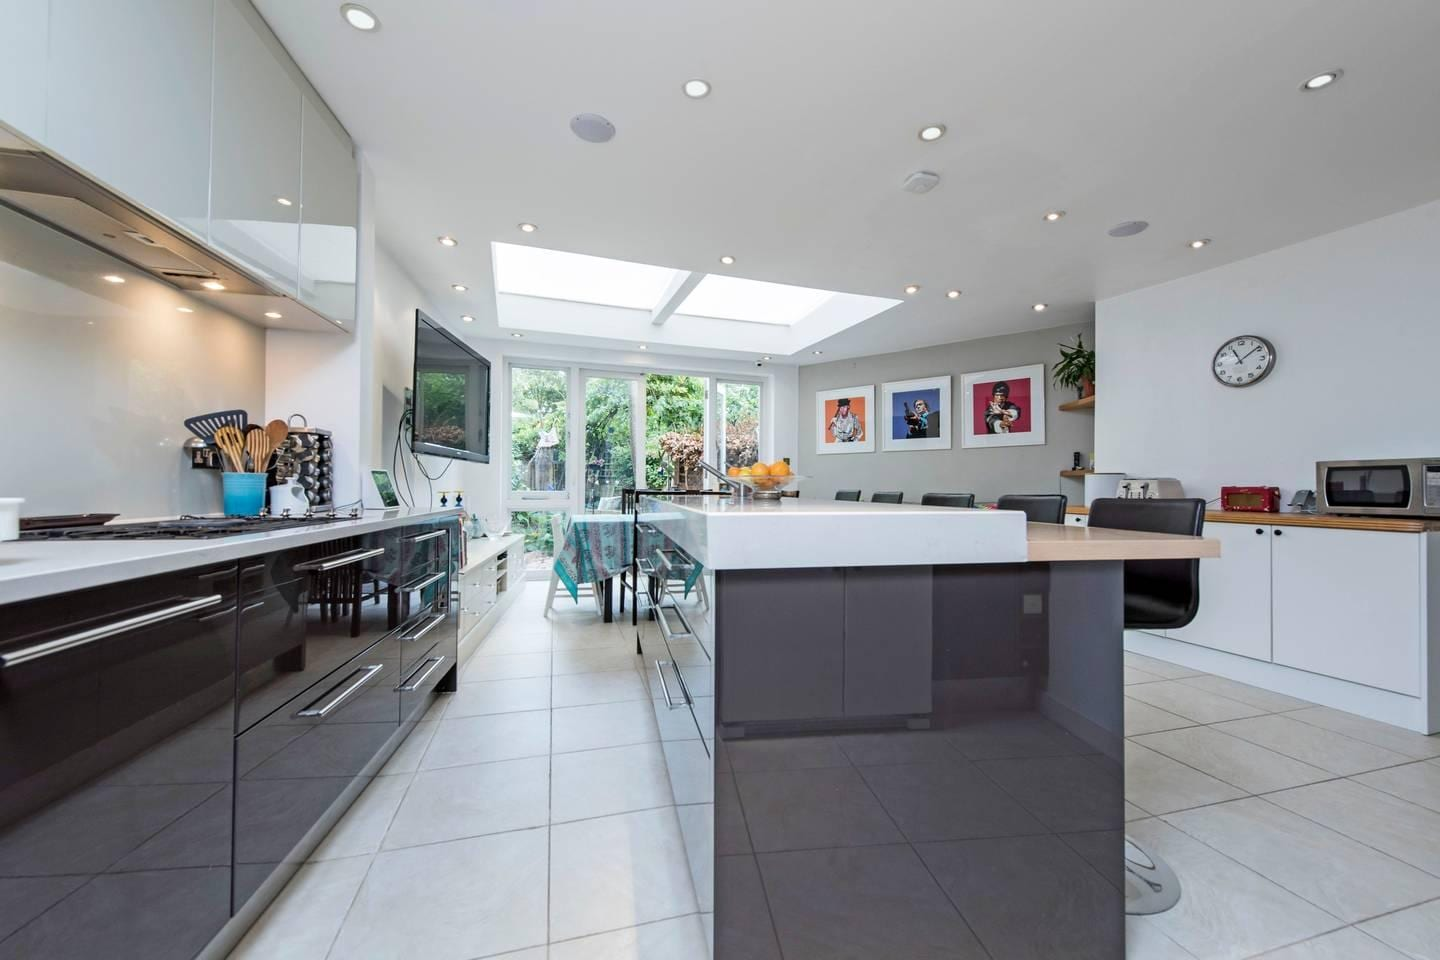 Property Image 2 - Spacious Family House in Wandsworth